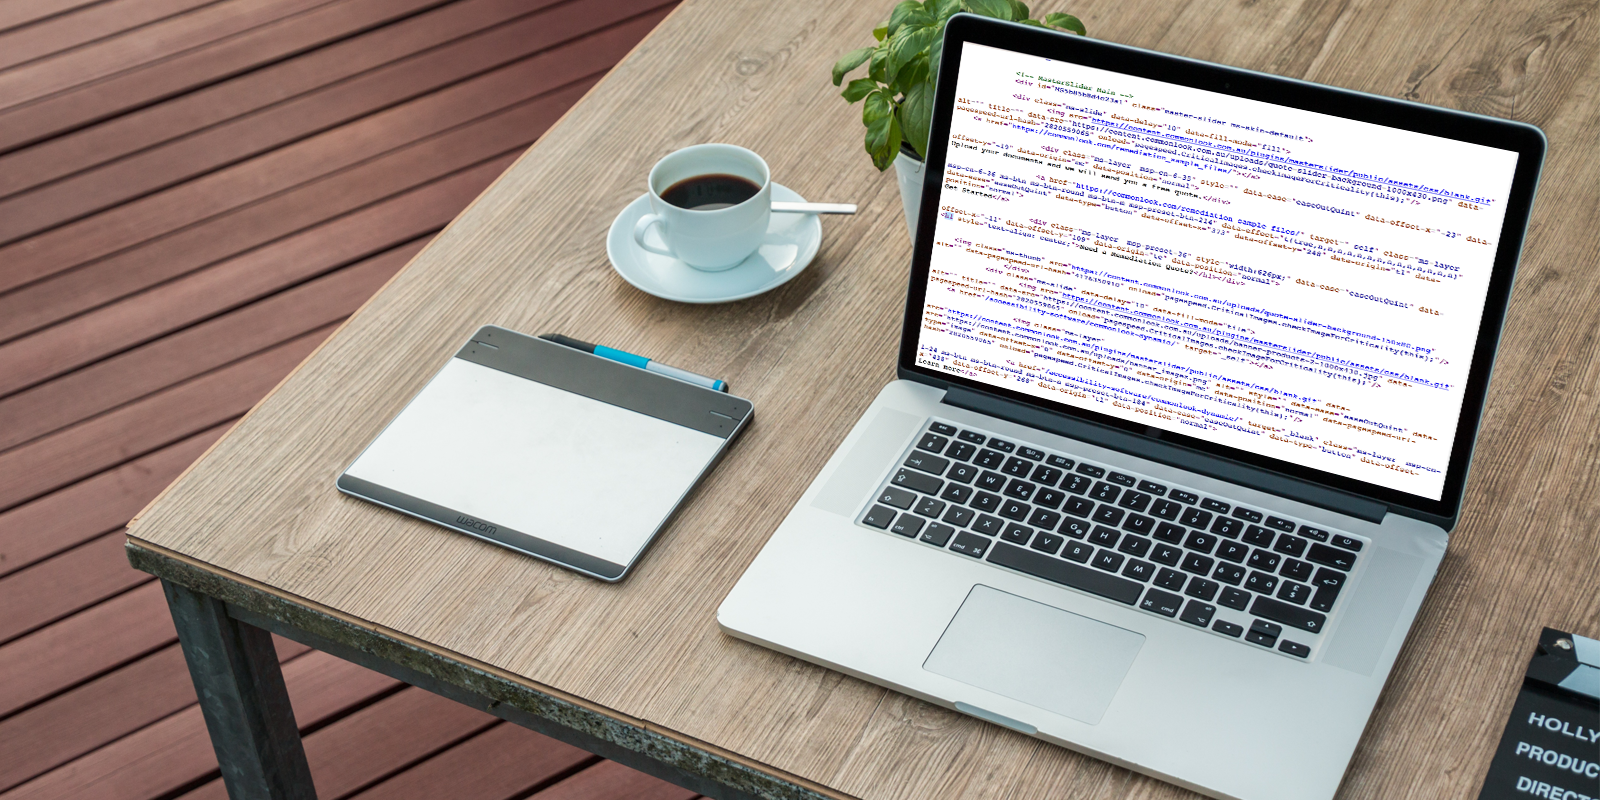 Laptop screen showing backend html and CSS code